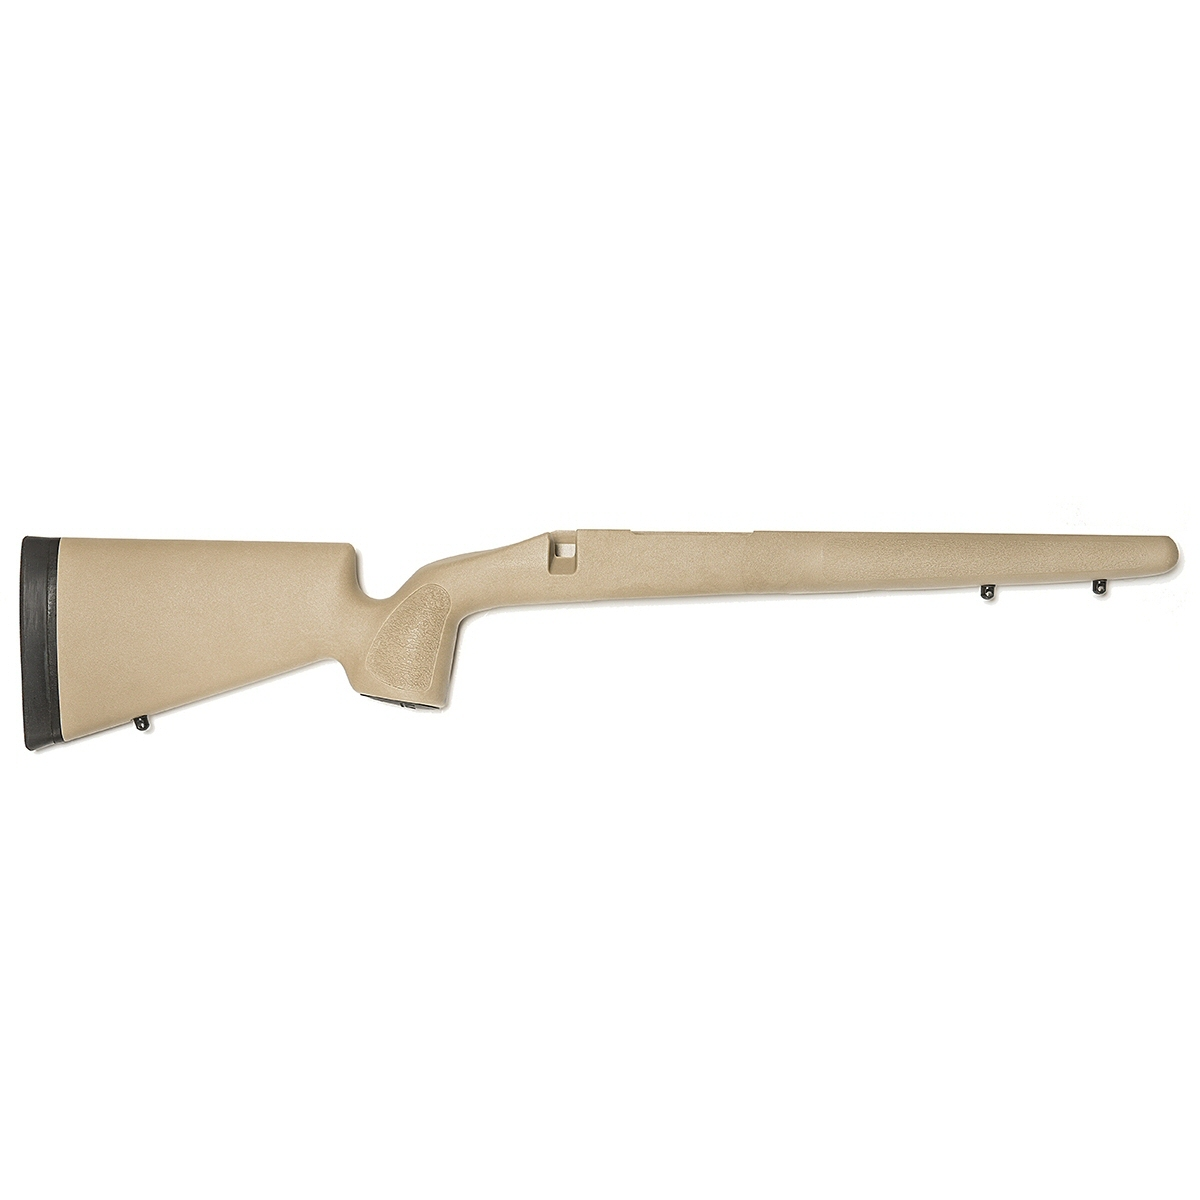 MC3 The Tradition Standard BDL FDE Long Action